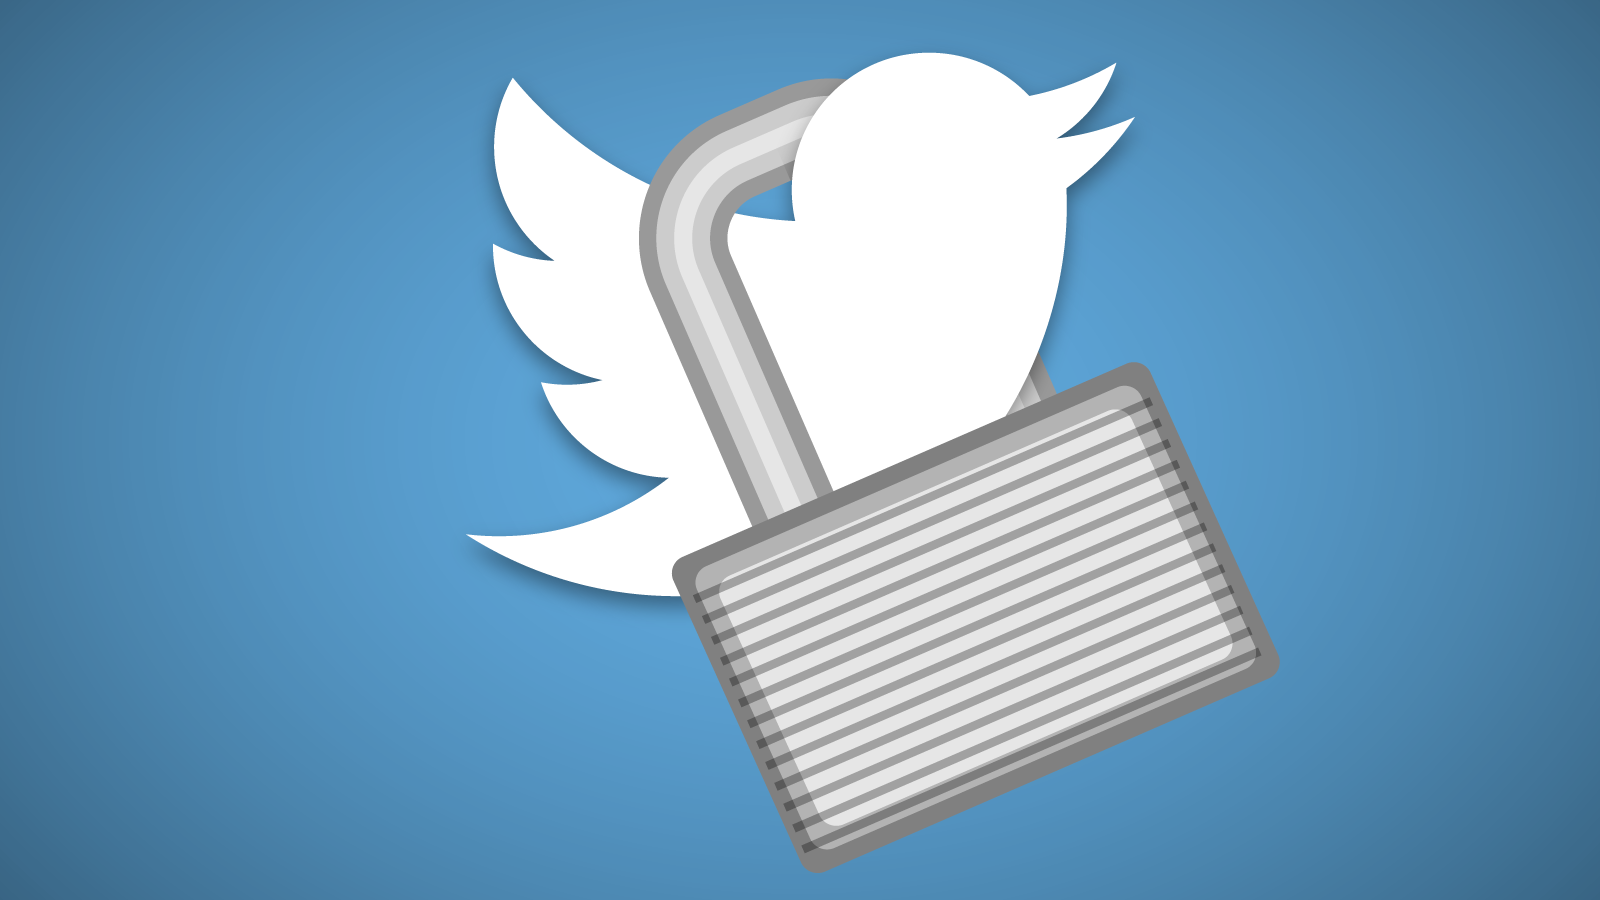 Twitter could soon add encryption to direct messages